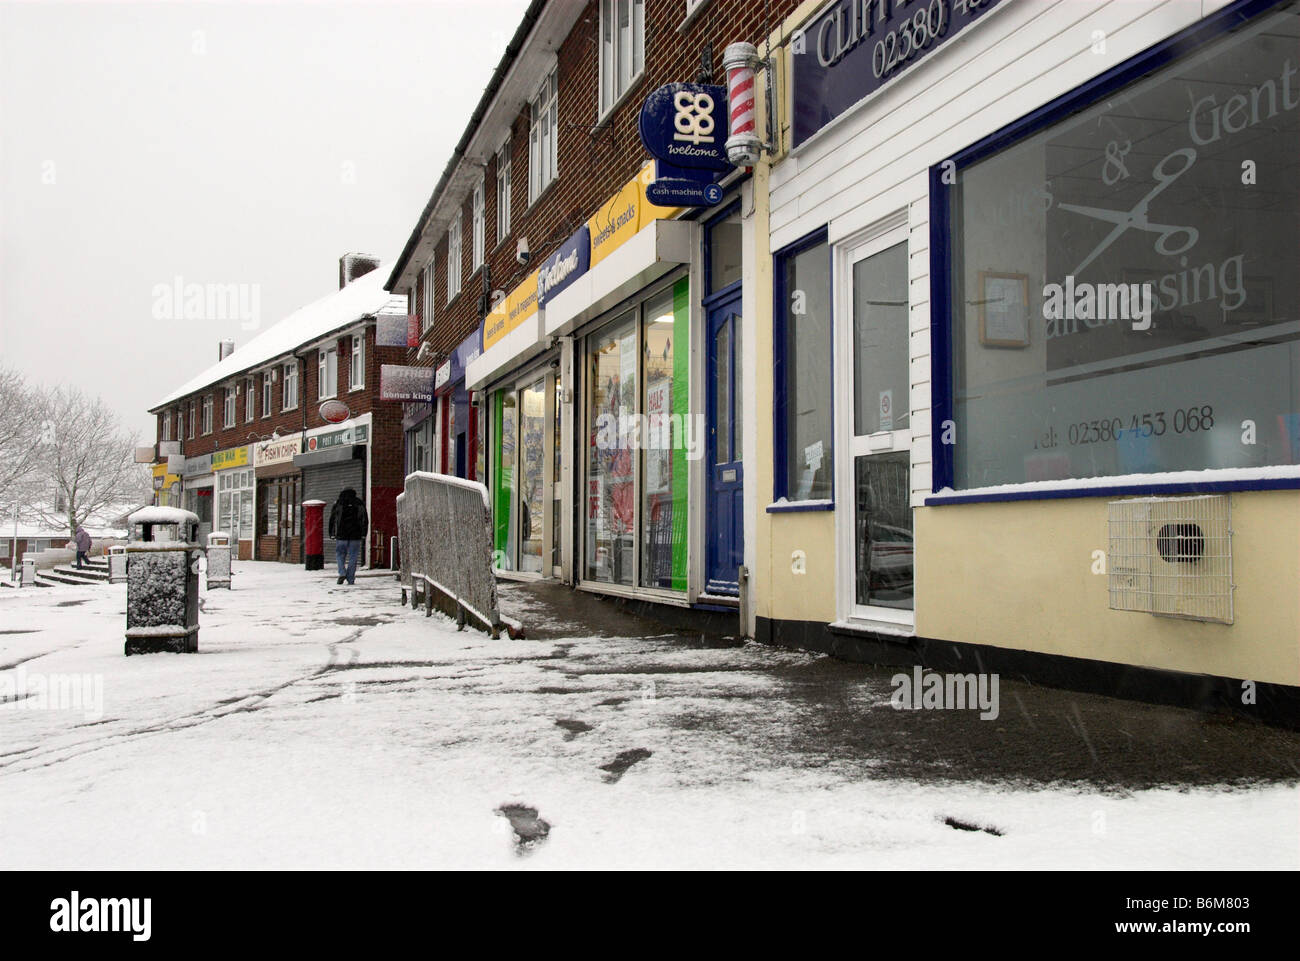 Snow Outside a Parade of Local Shops in A Hampshire Village Stock Photo